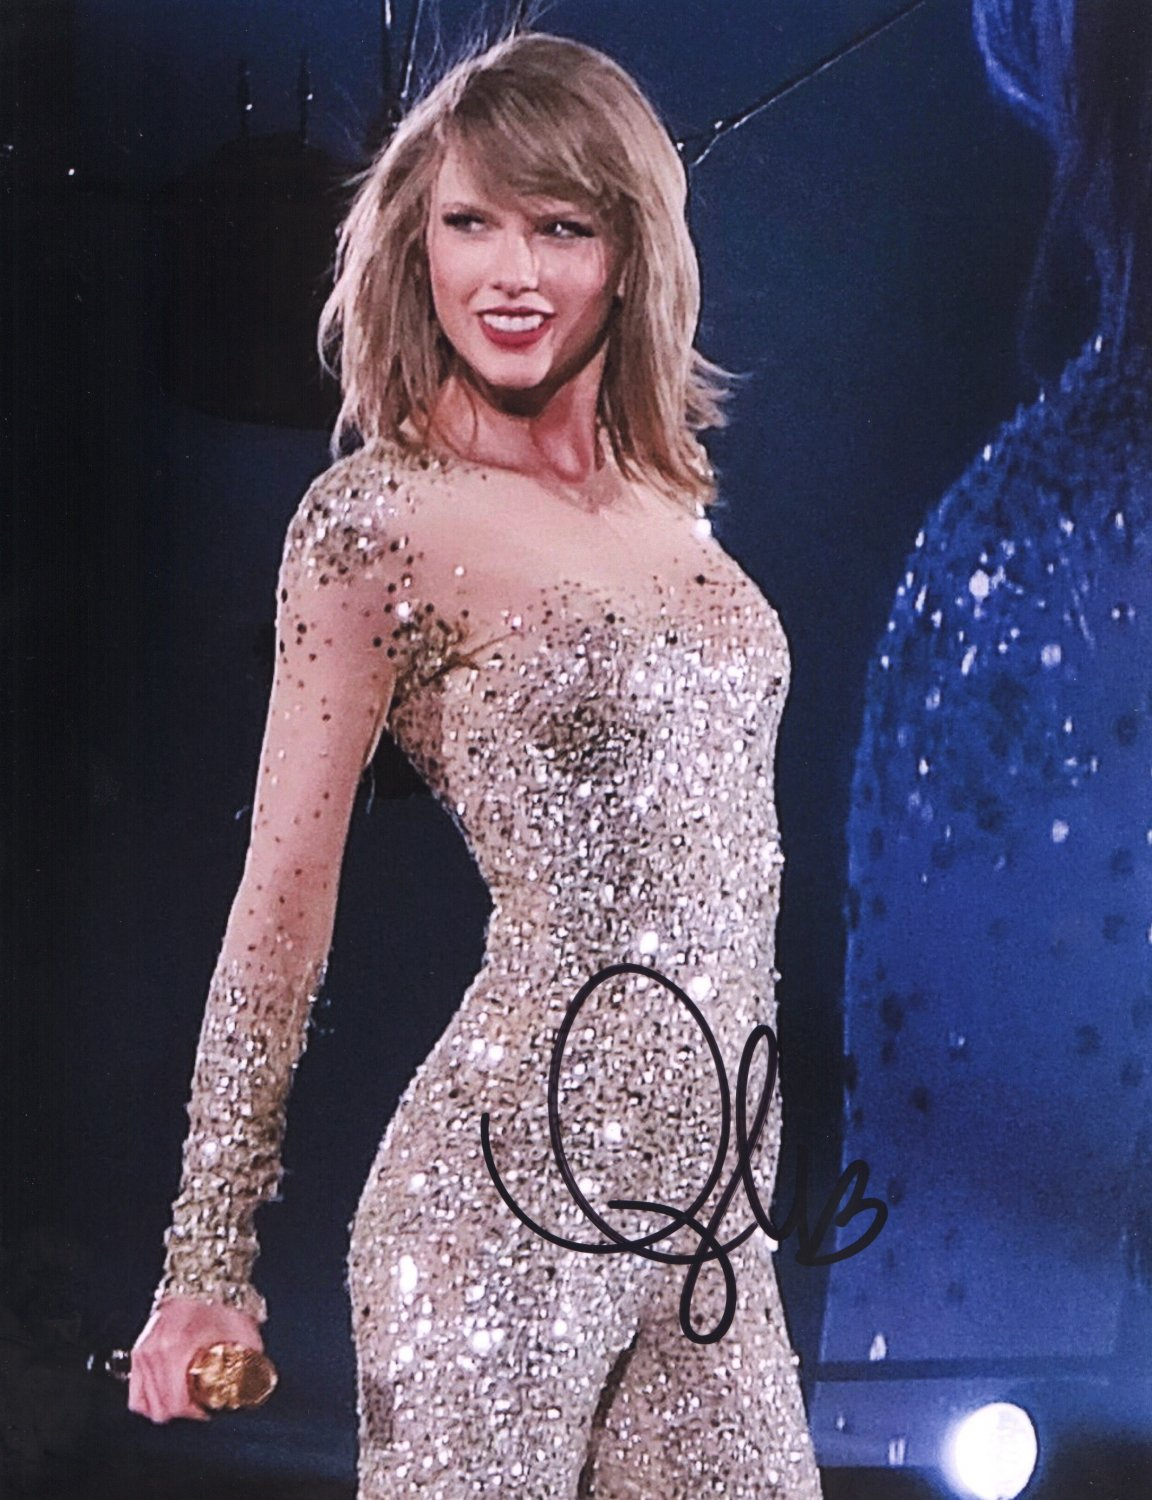 TAYLOR SWIFT - SUPER SEXY POSE - HAND SIGNED AUTOGRAPHED PHOTO WITH COA